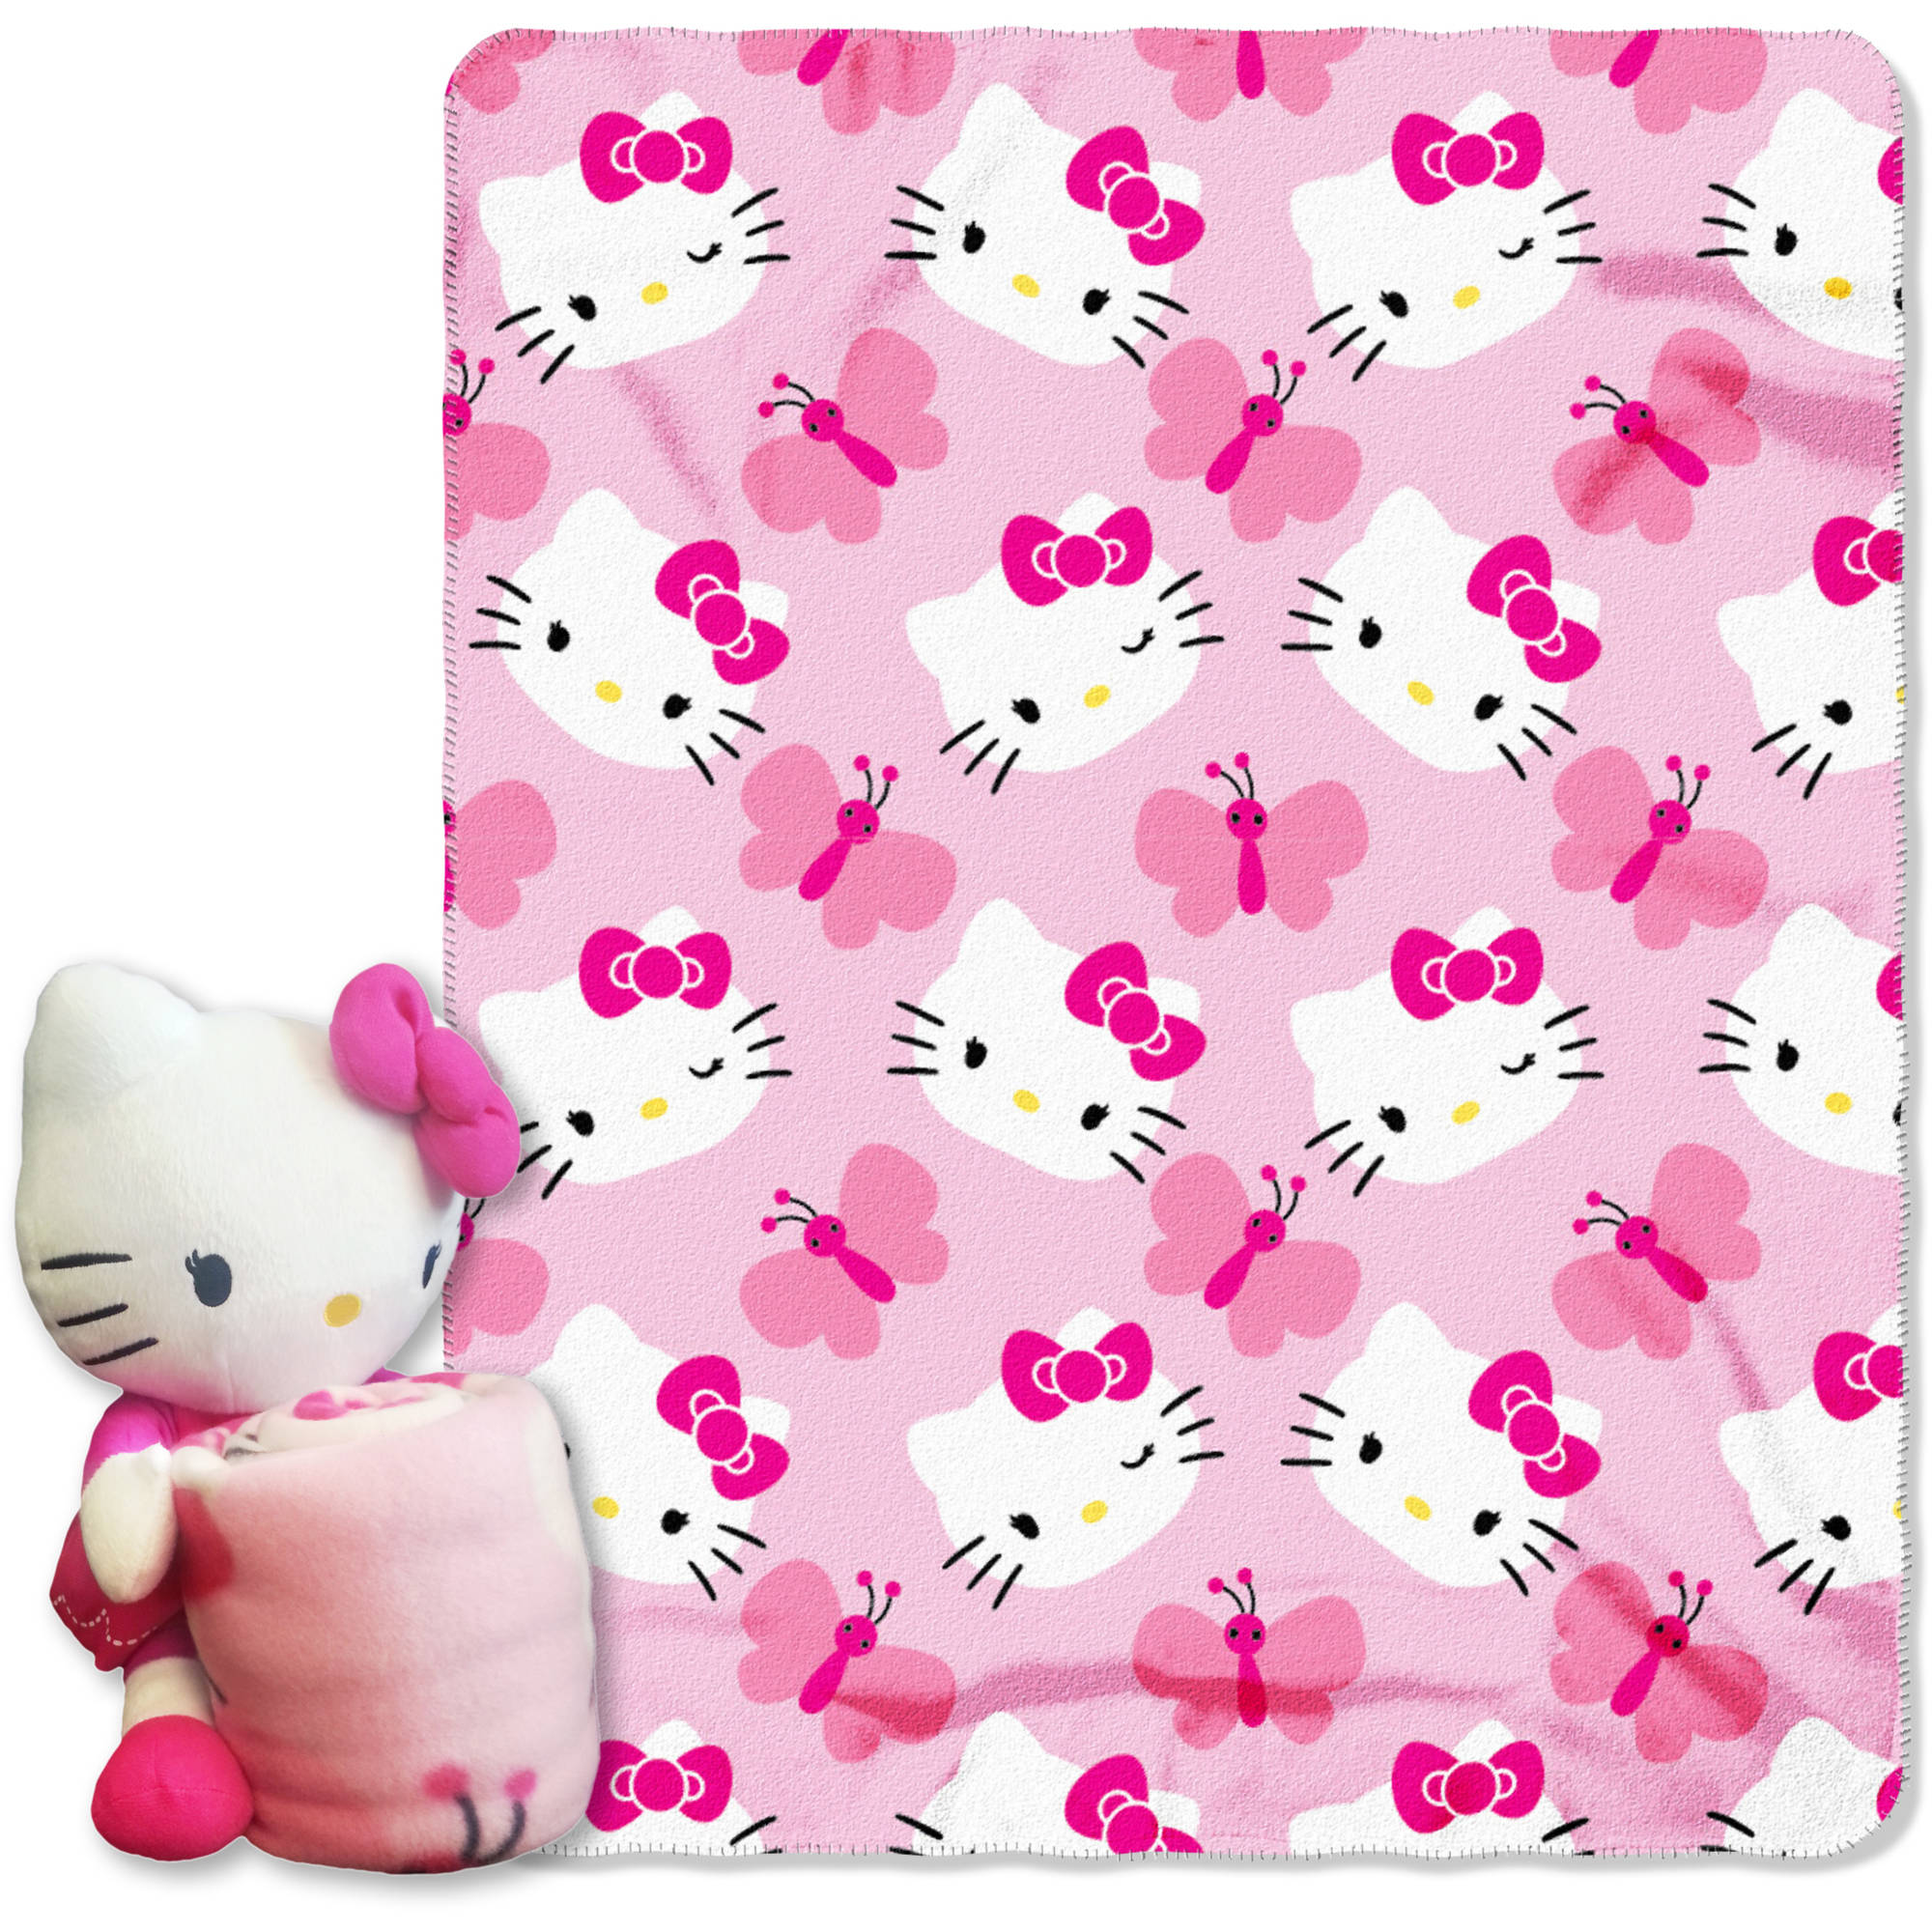 Sanrios Hello Kitty, Kitty Butterfly Hugger Character Shaped Pillow and 40x 50 Fleece Throw Set